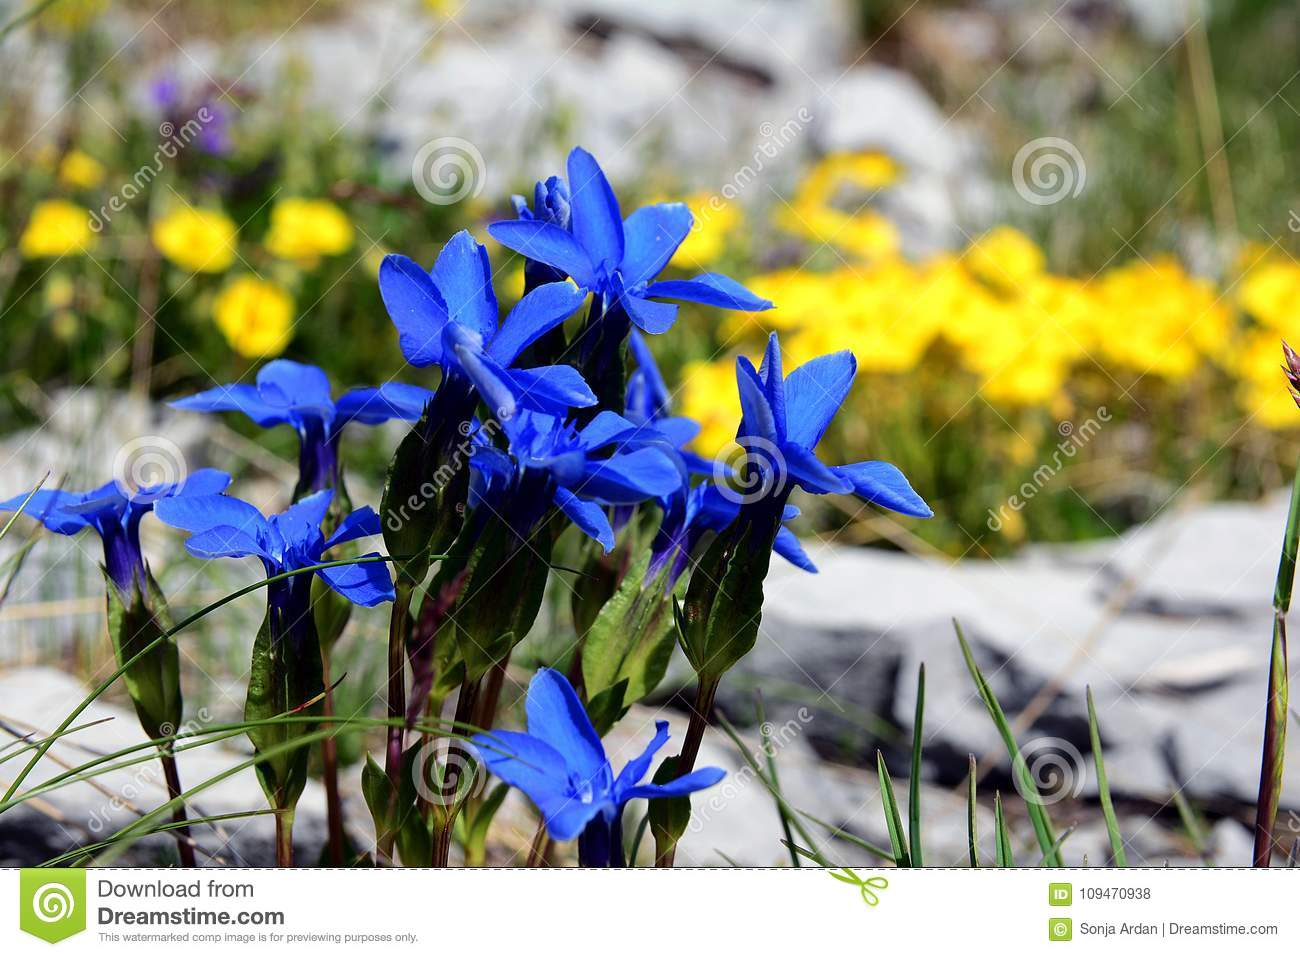 Nature rocks little blue flowers in stone hugs stock photo image nature rocks little blue flowers in stone hugs izmirmasajfo Choice Image